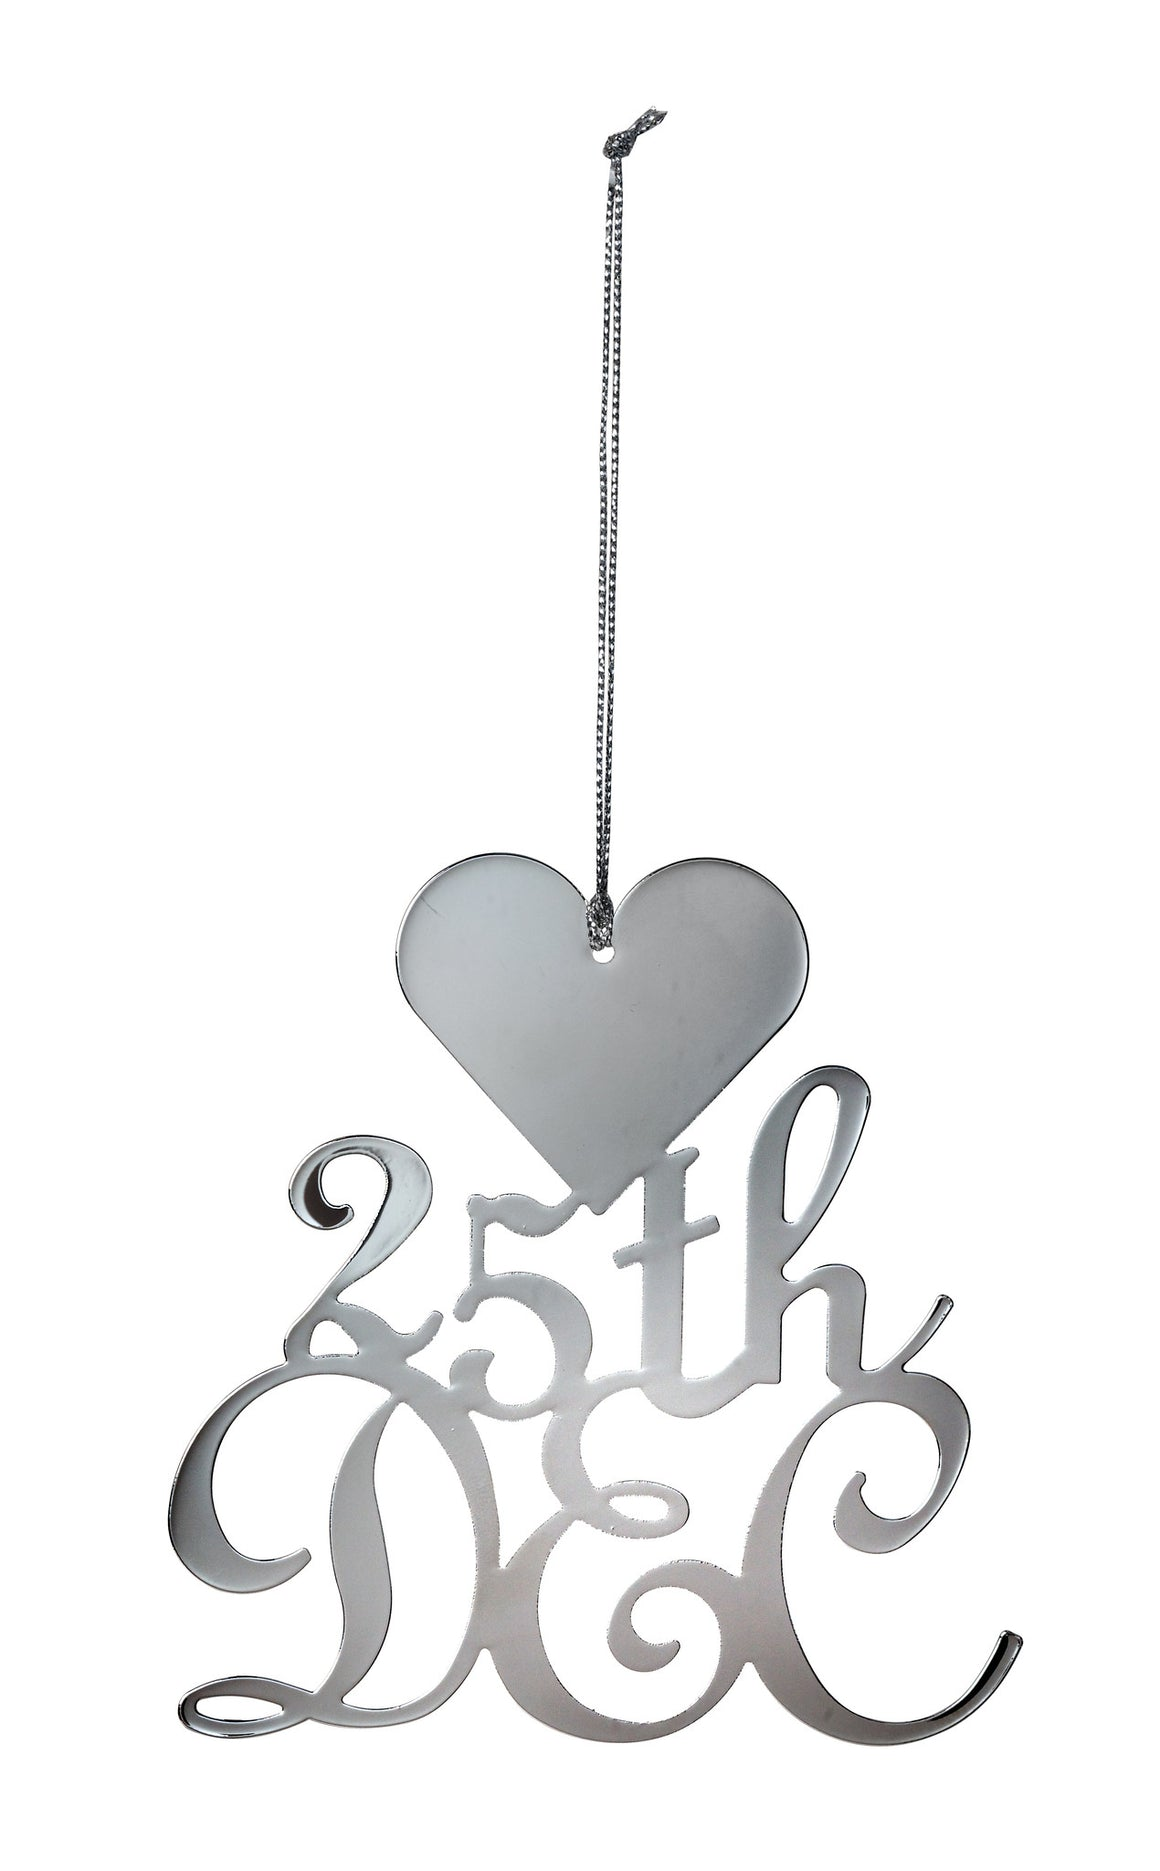 '25th Dec' Heart Christmas Decoration - The Love Trees